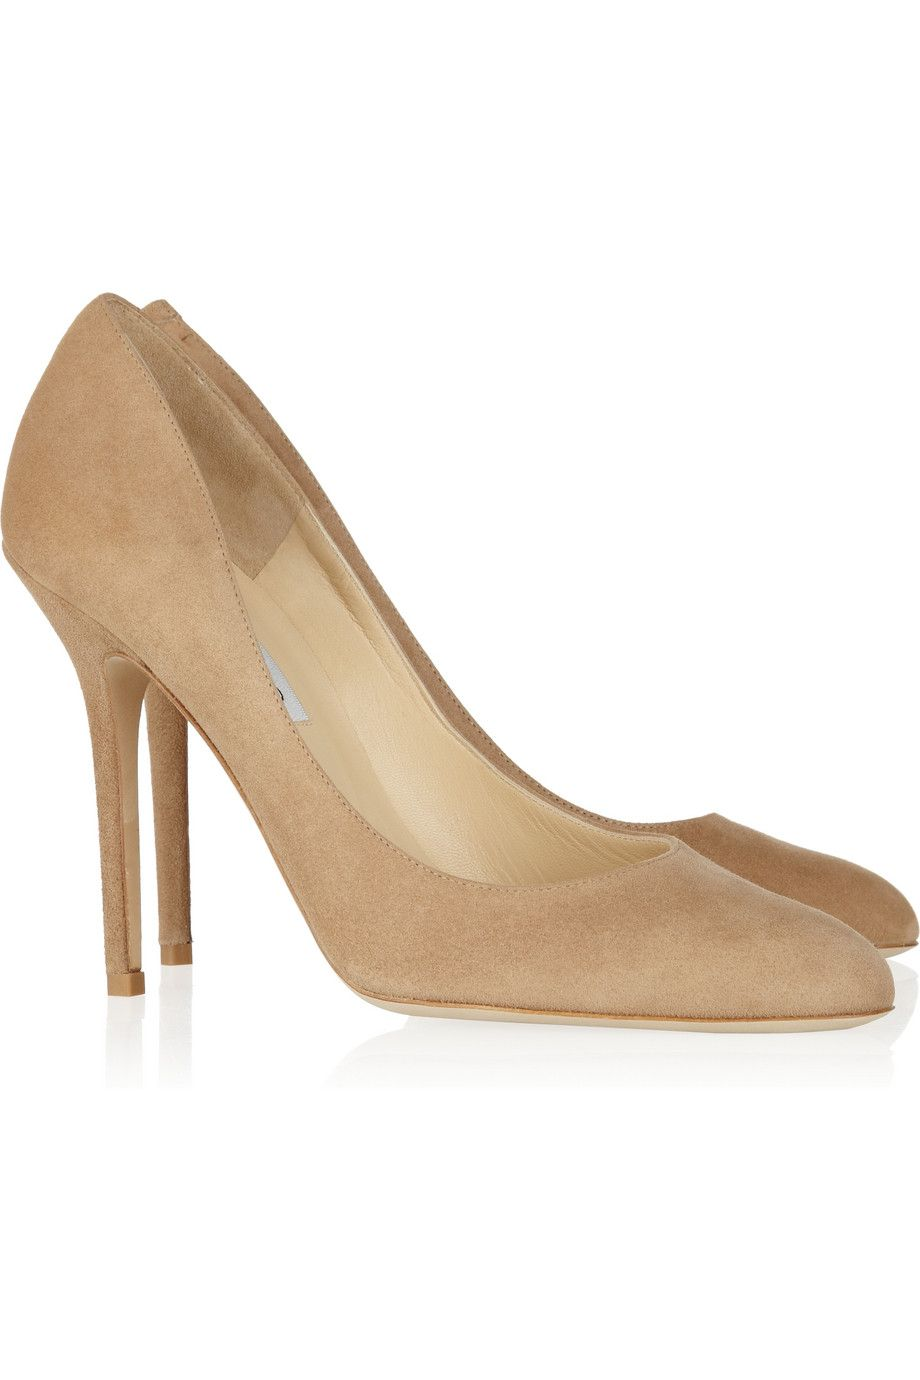 Neutral Lovely suede pumps   Jimmy Choo